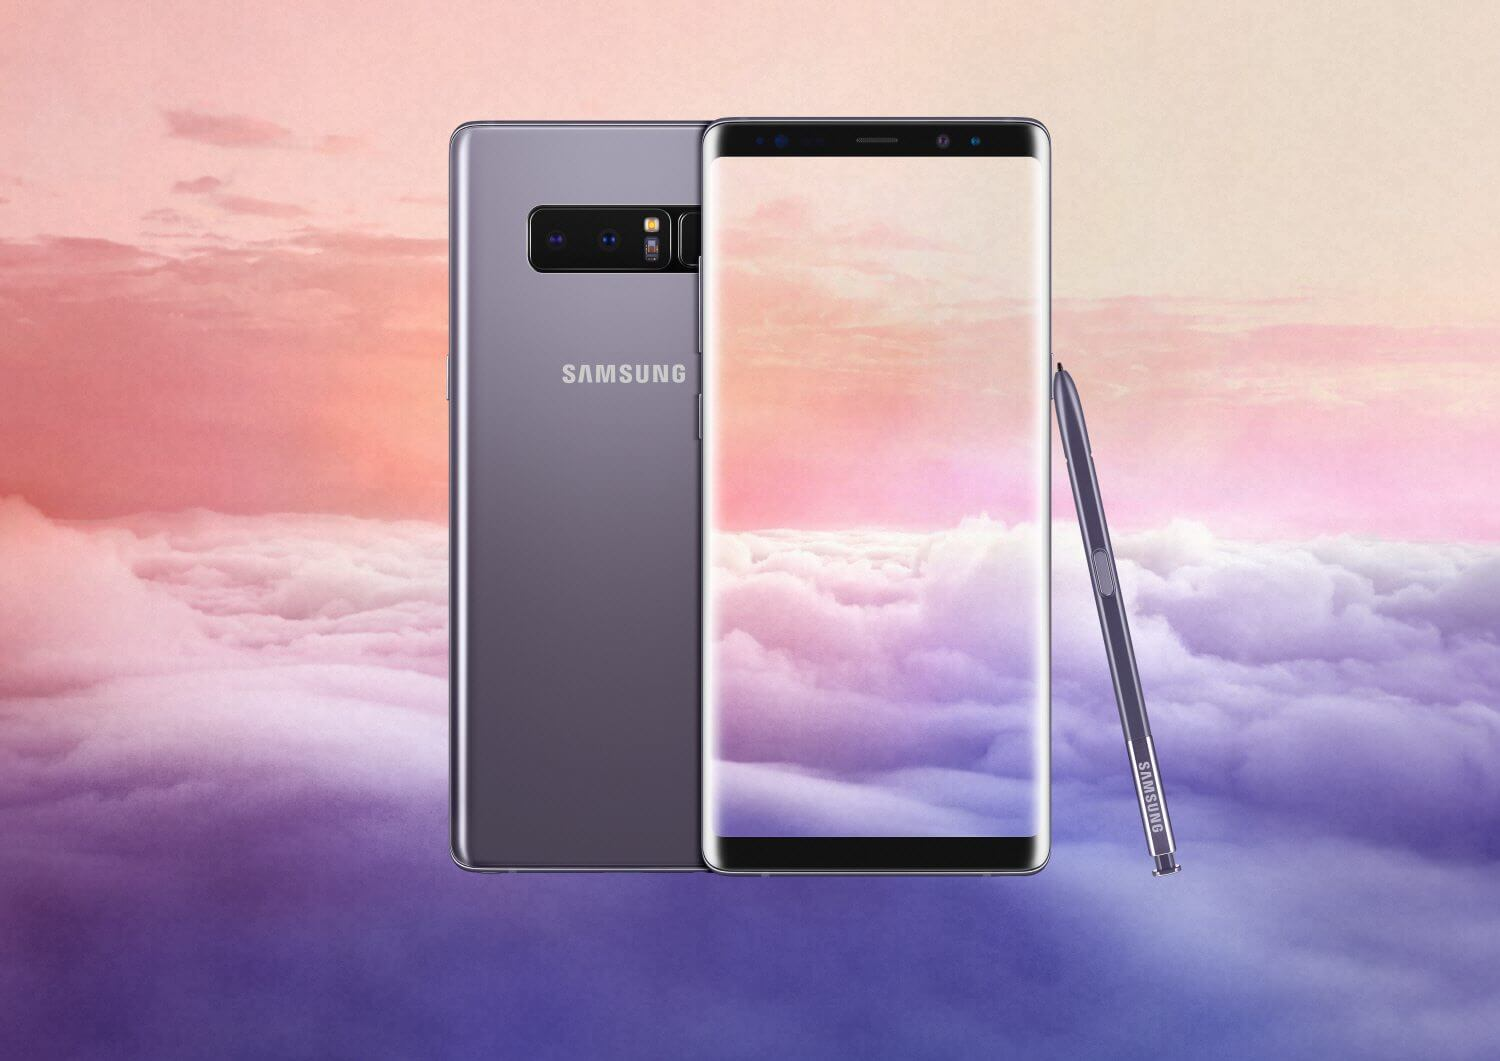 13.Galaxy Note8 Orchid Gray